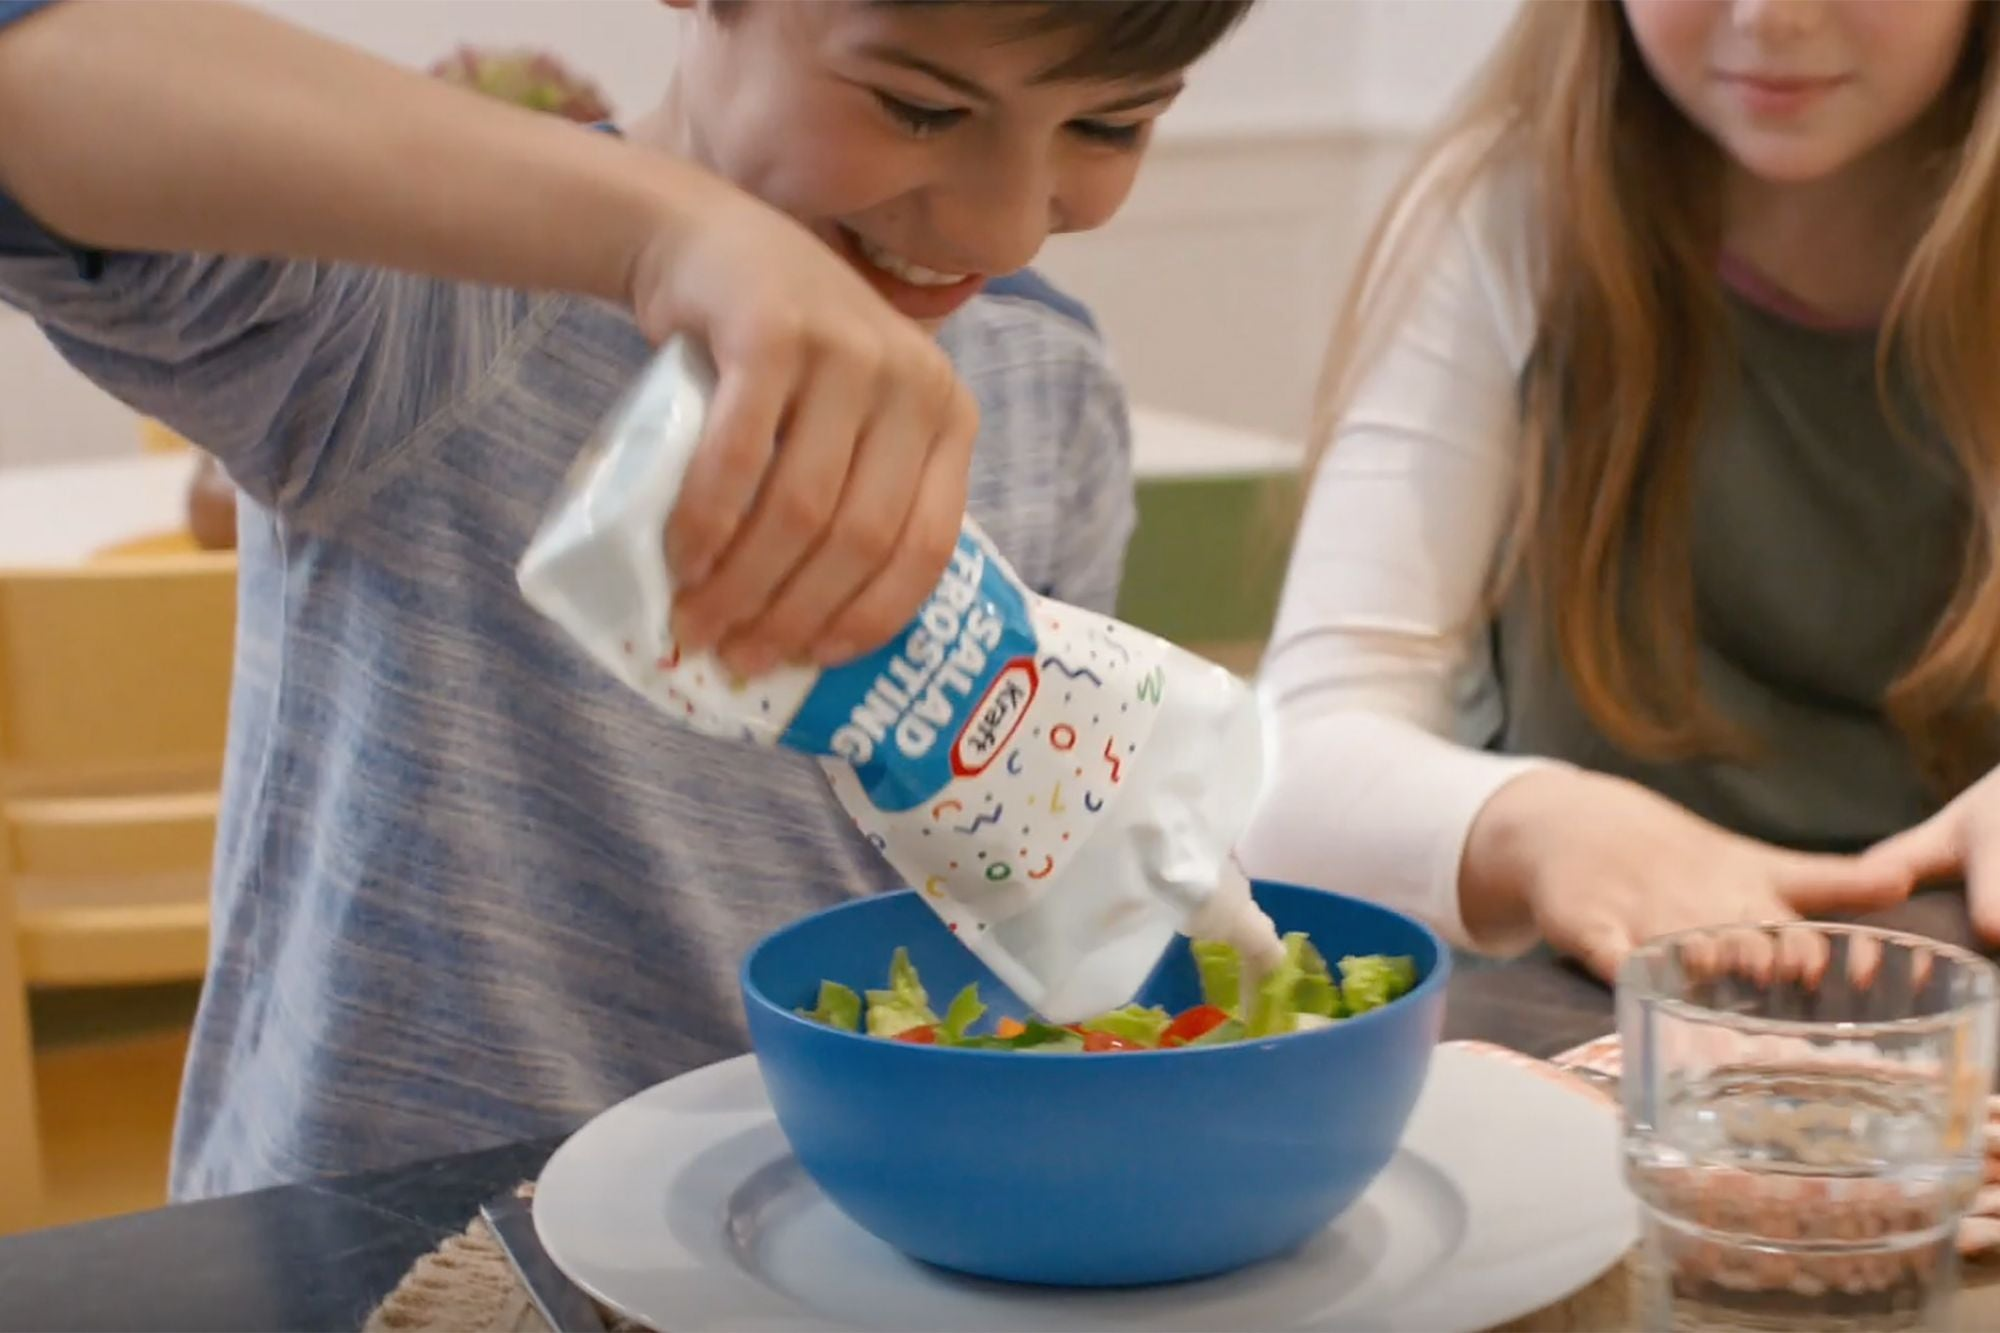 Kraft Rebrands Ranch Dressing as 'Salad Frosting' to Trick Kids Into Eating Vegetables